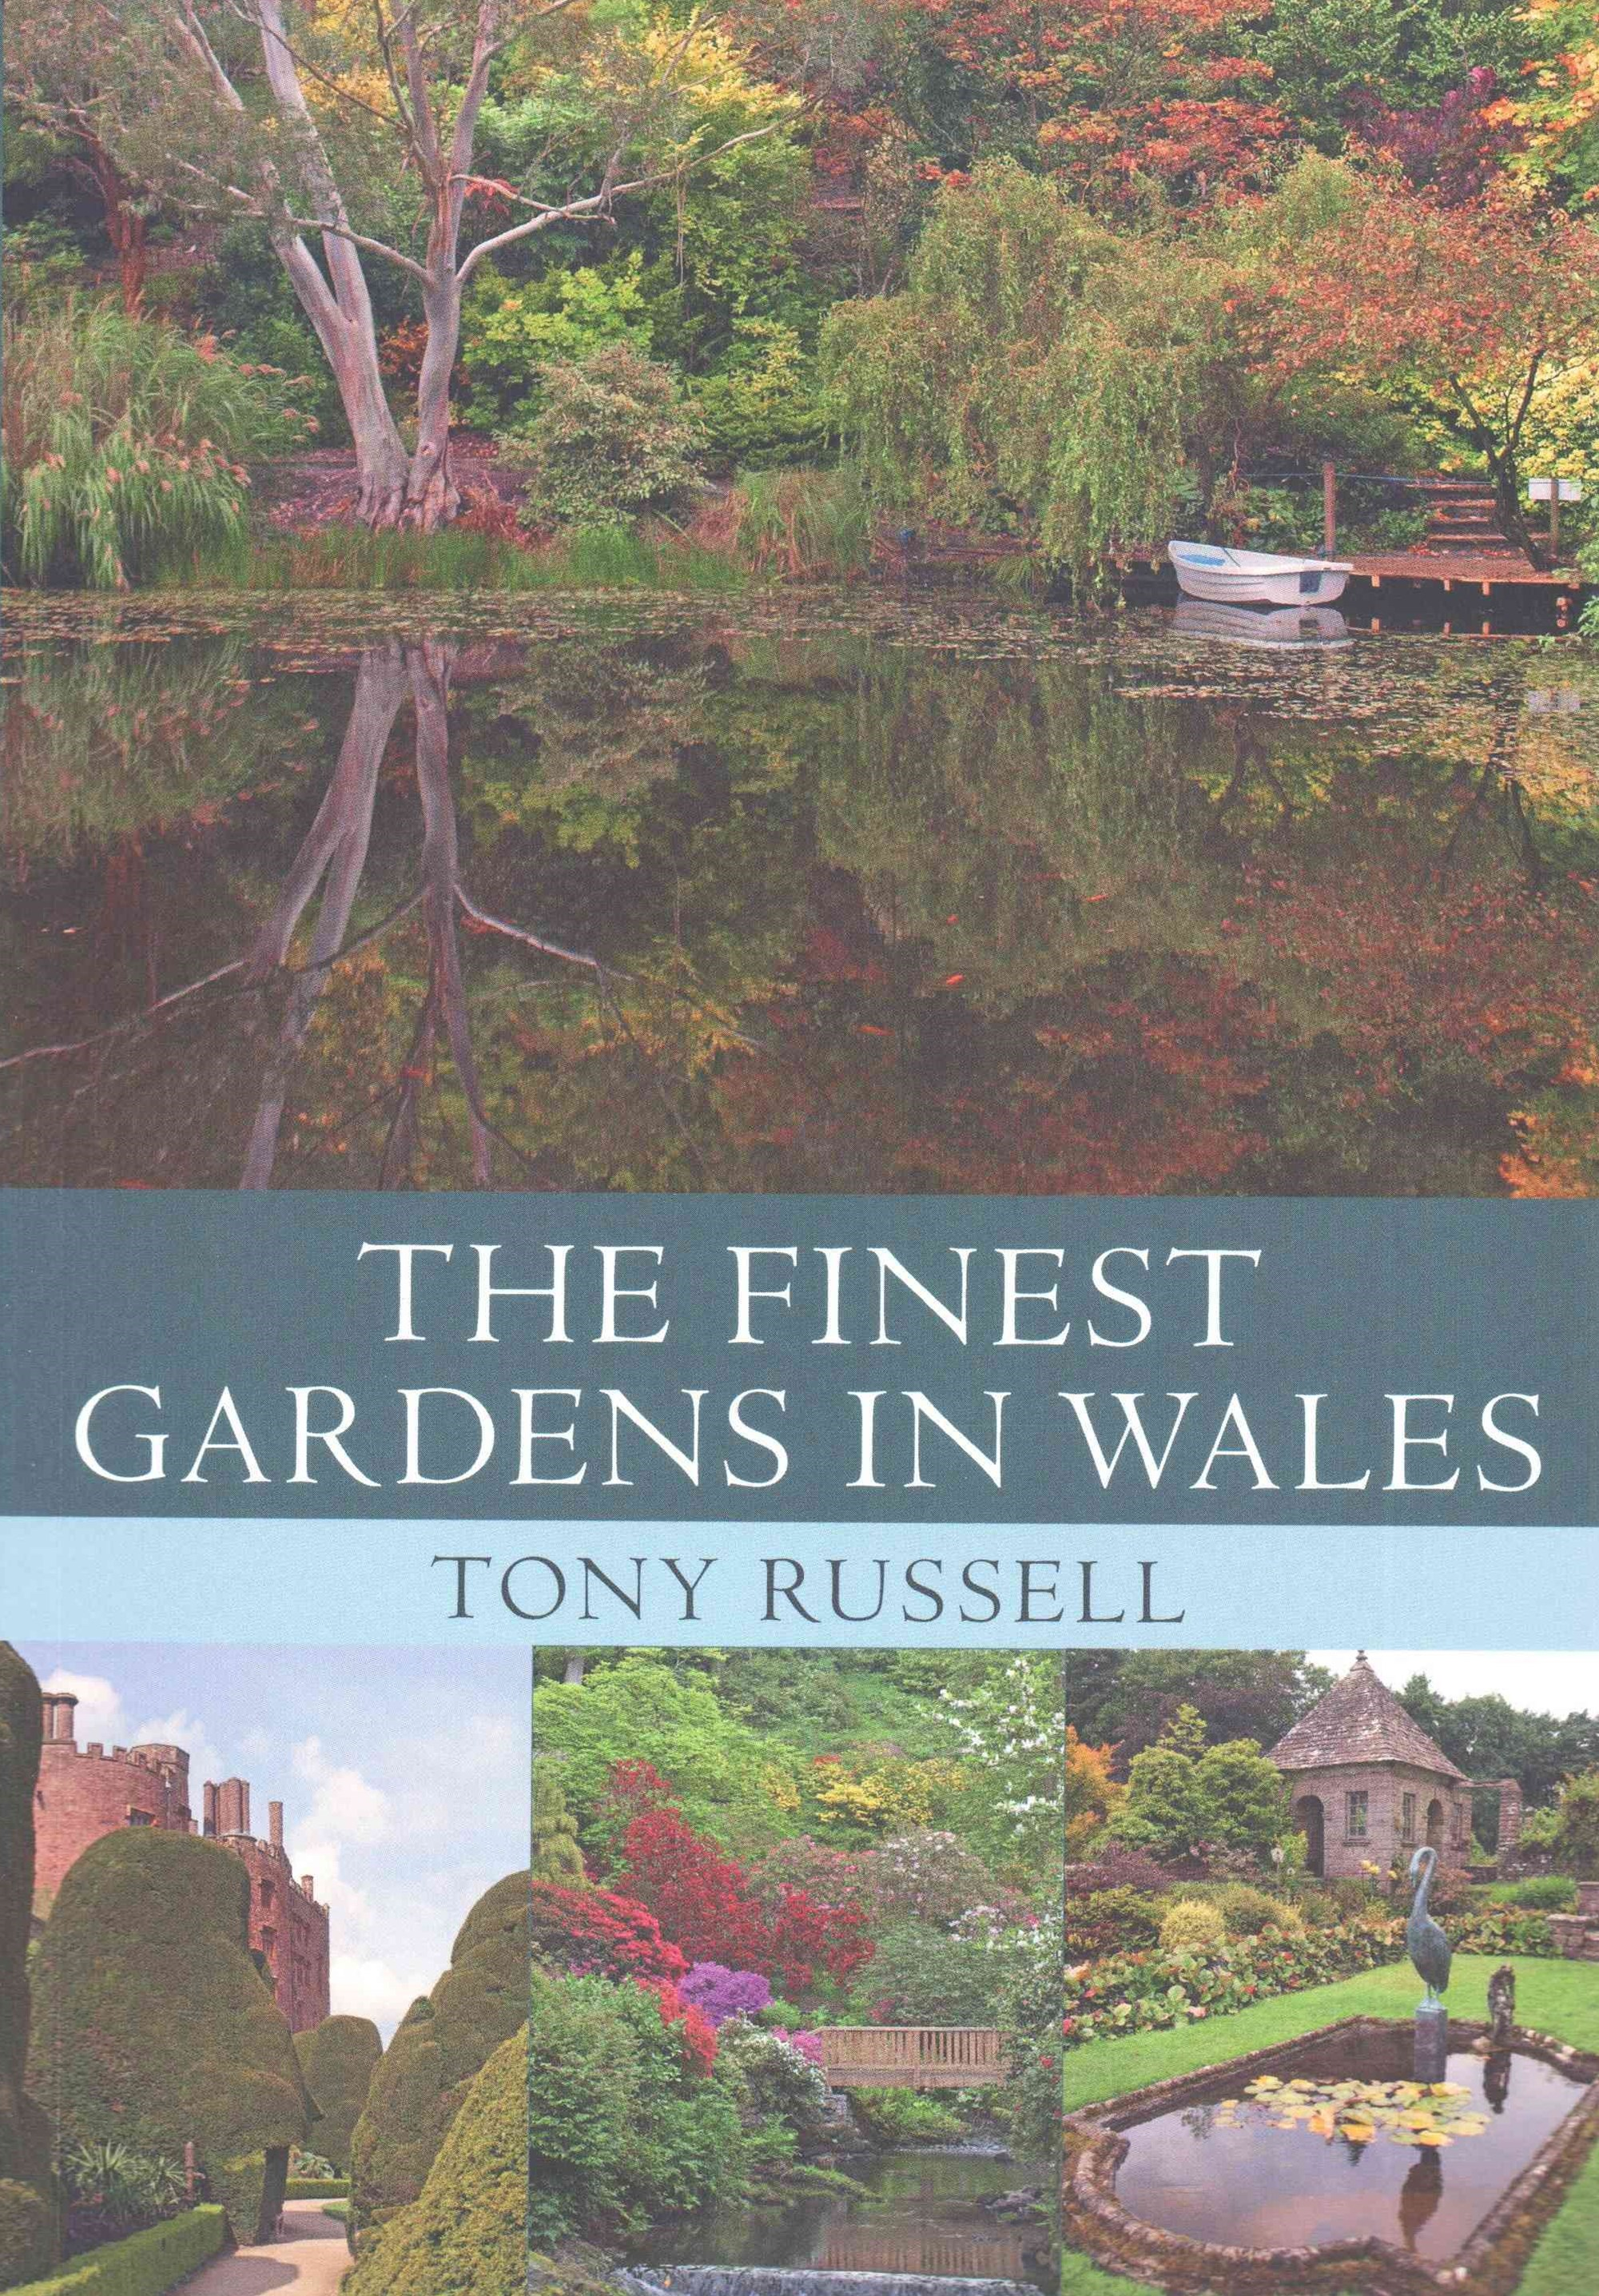 The Finest Gardens in Wales